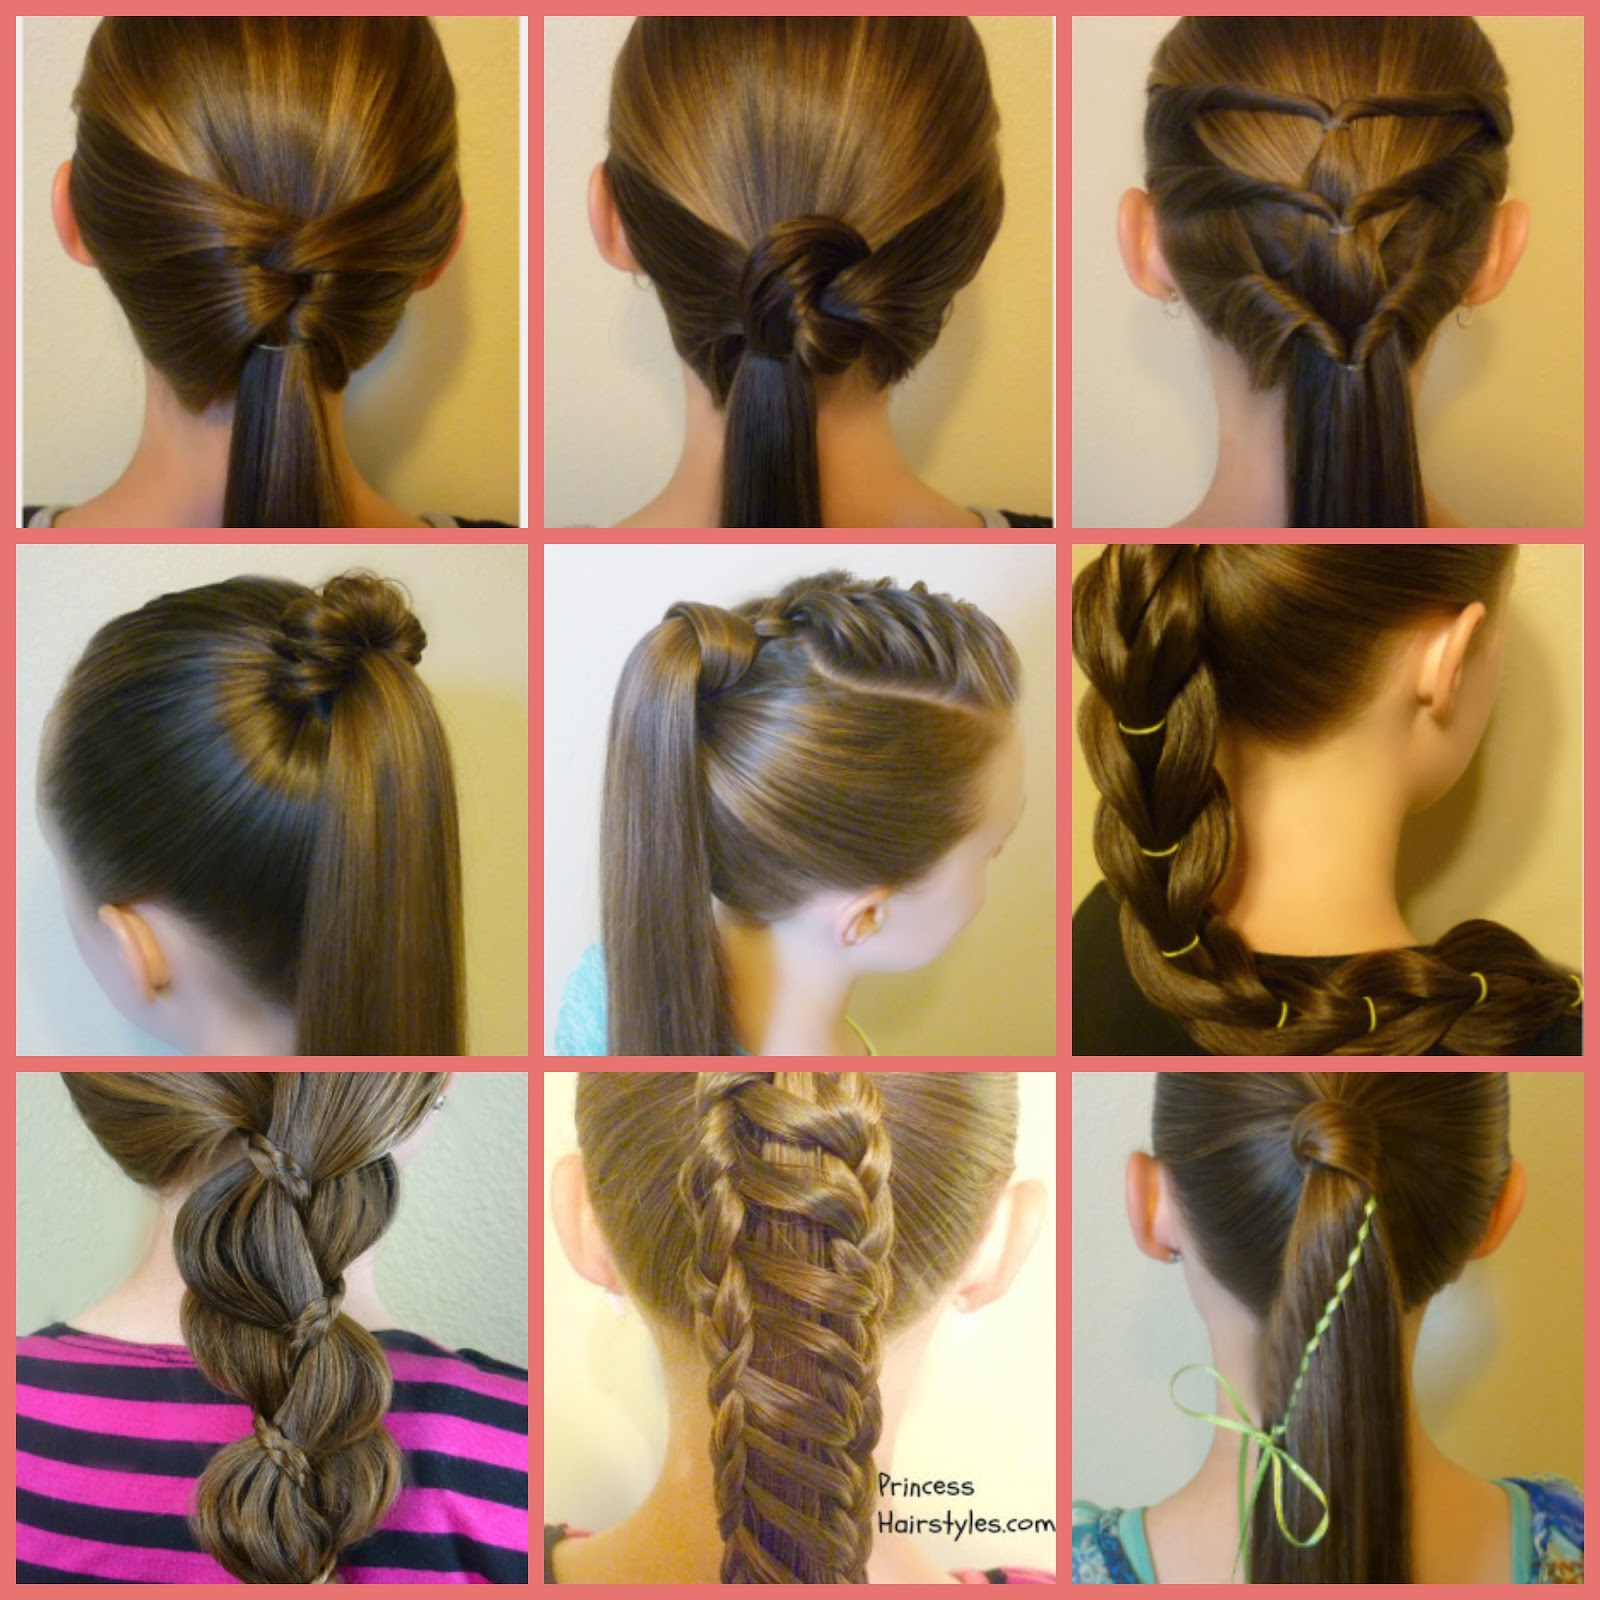 10 Easy Ponytail Hairstyles Hairstyles For Girls Princess Hairstyles